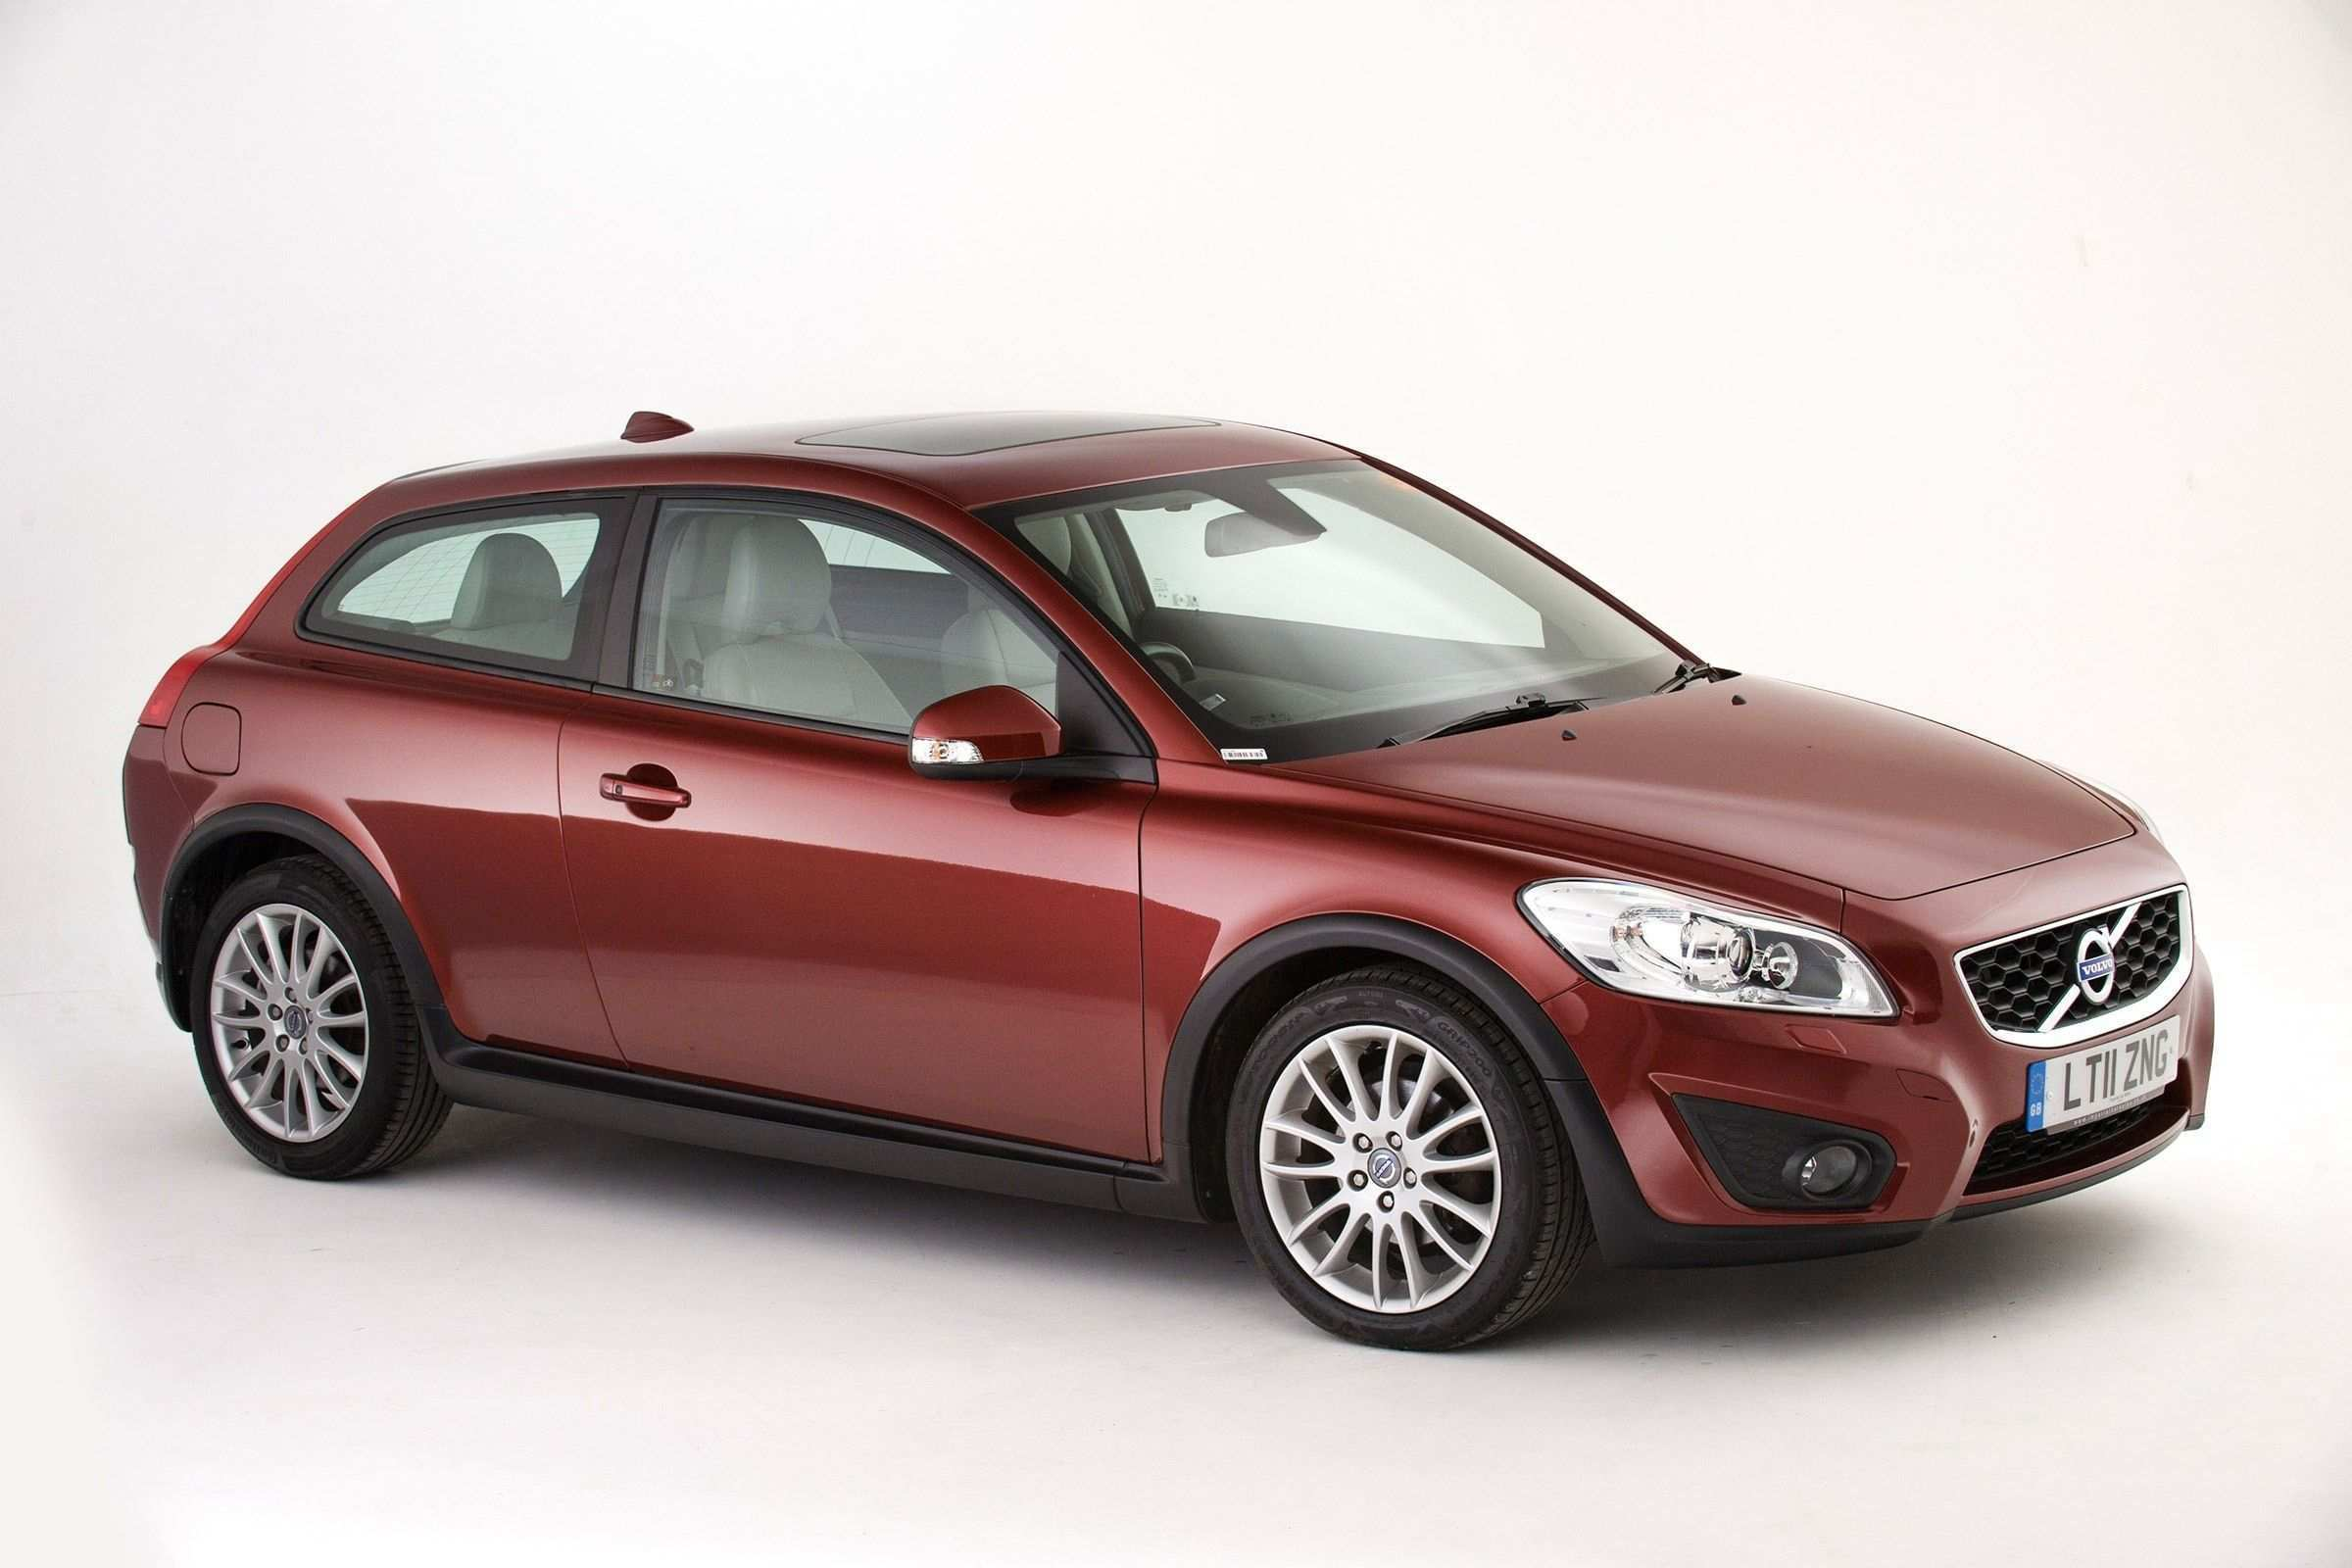 33 Great Volvo C30 2019 Specs and Review for Volvo C30 2019